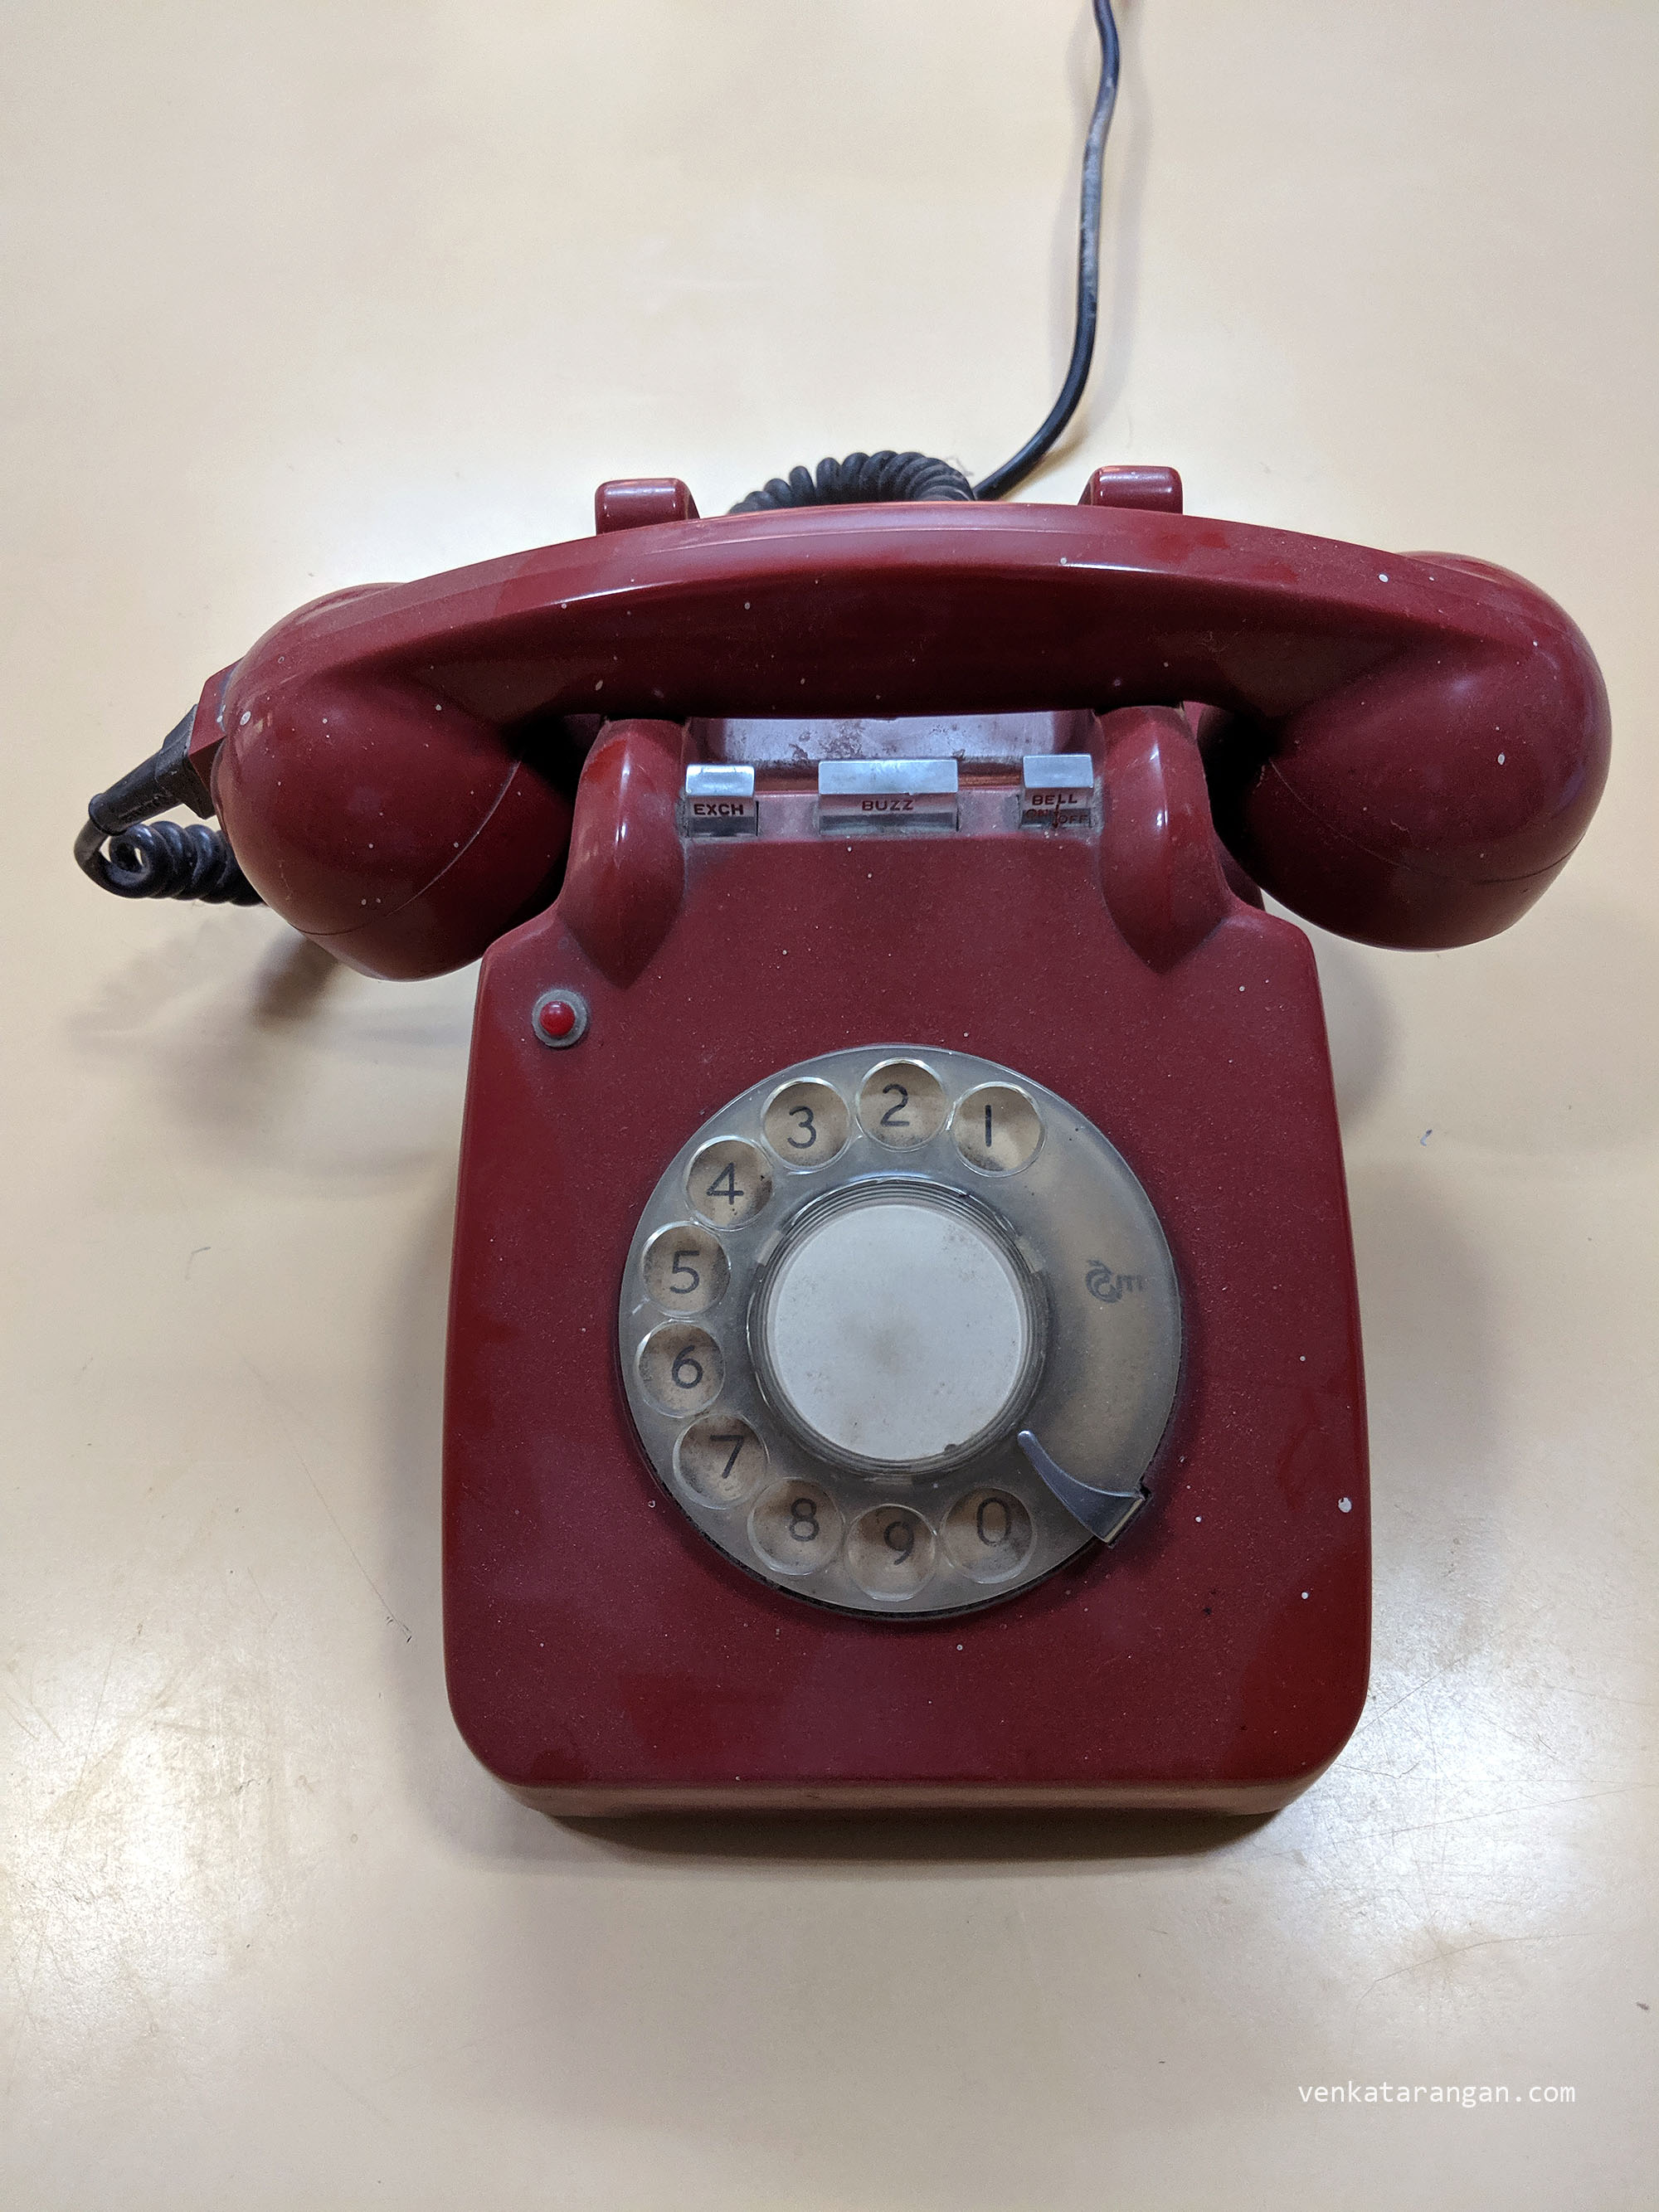 Red colour, rotary dial phone made by ITI, Government of India